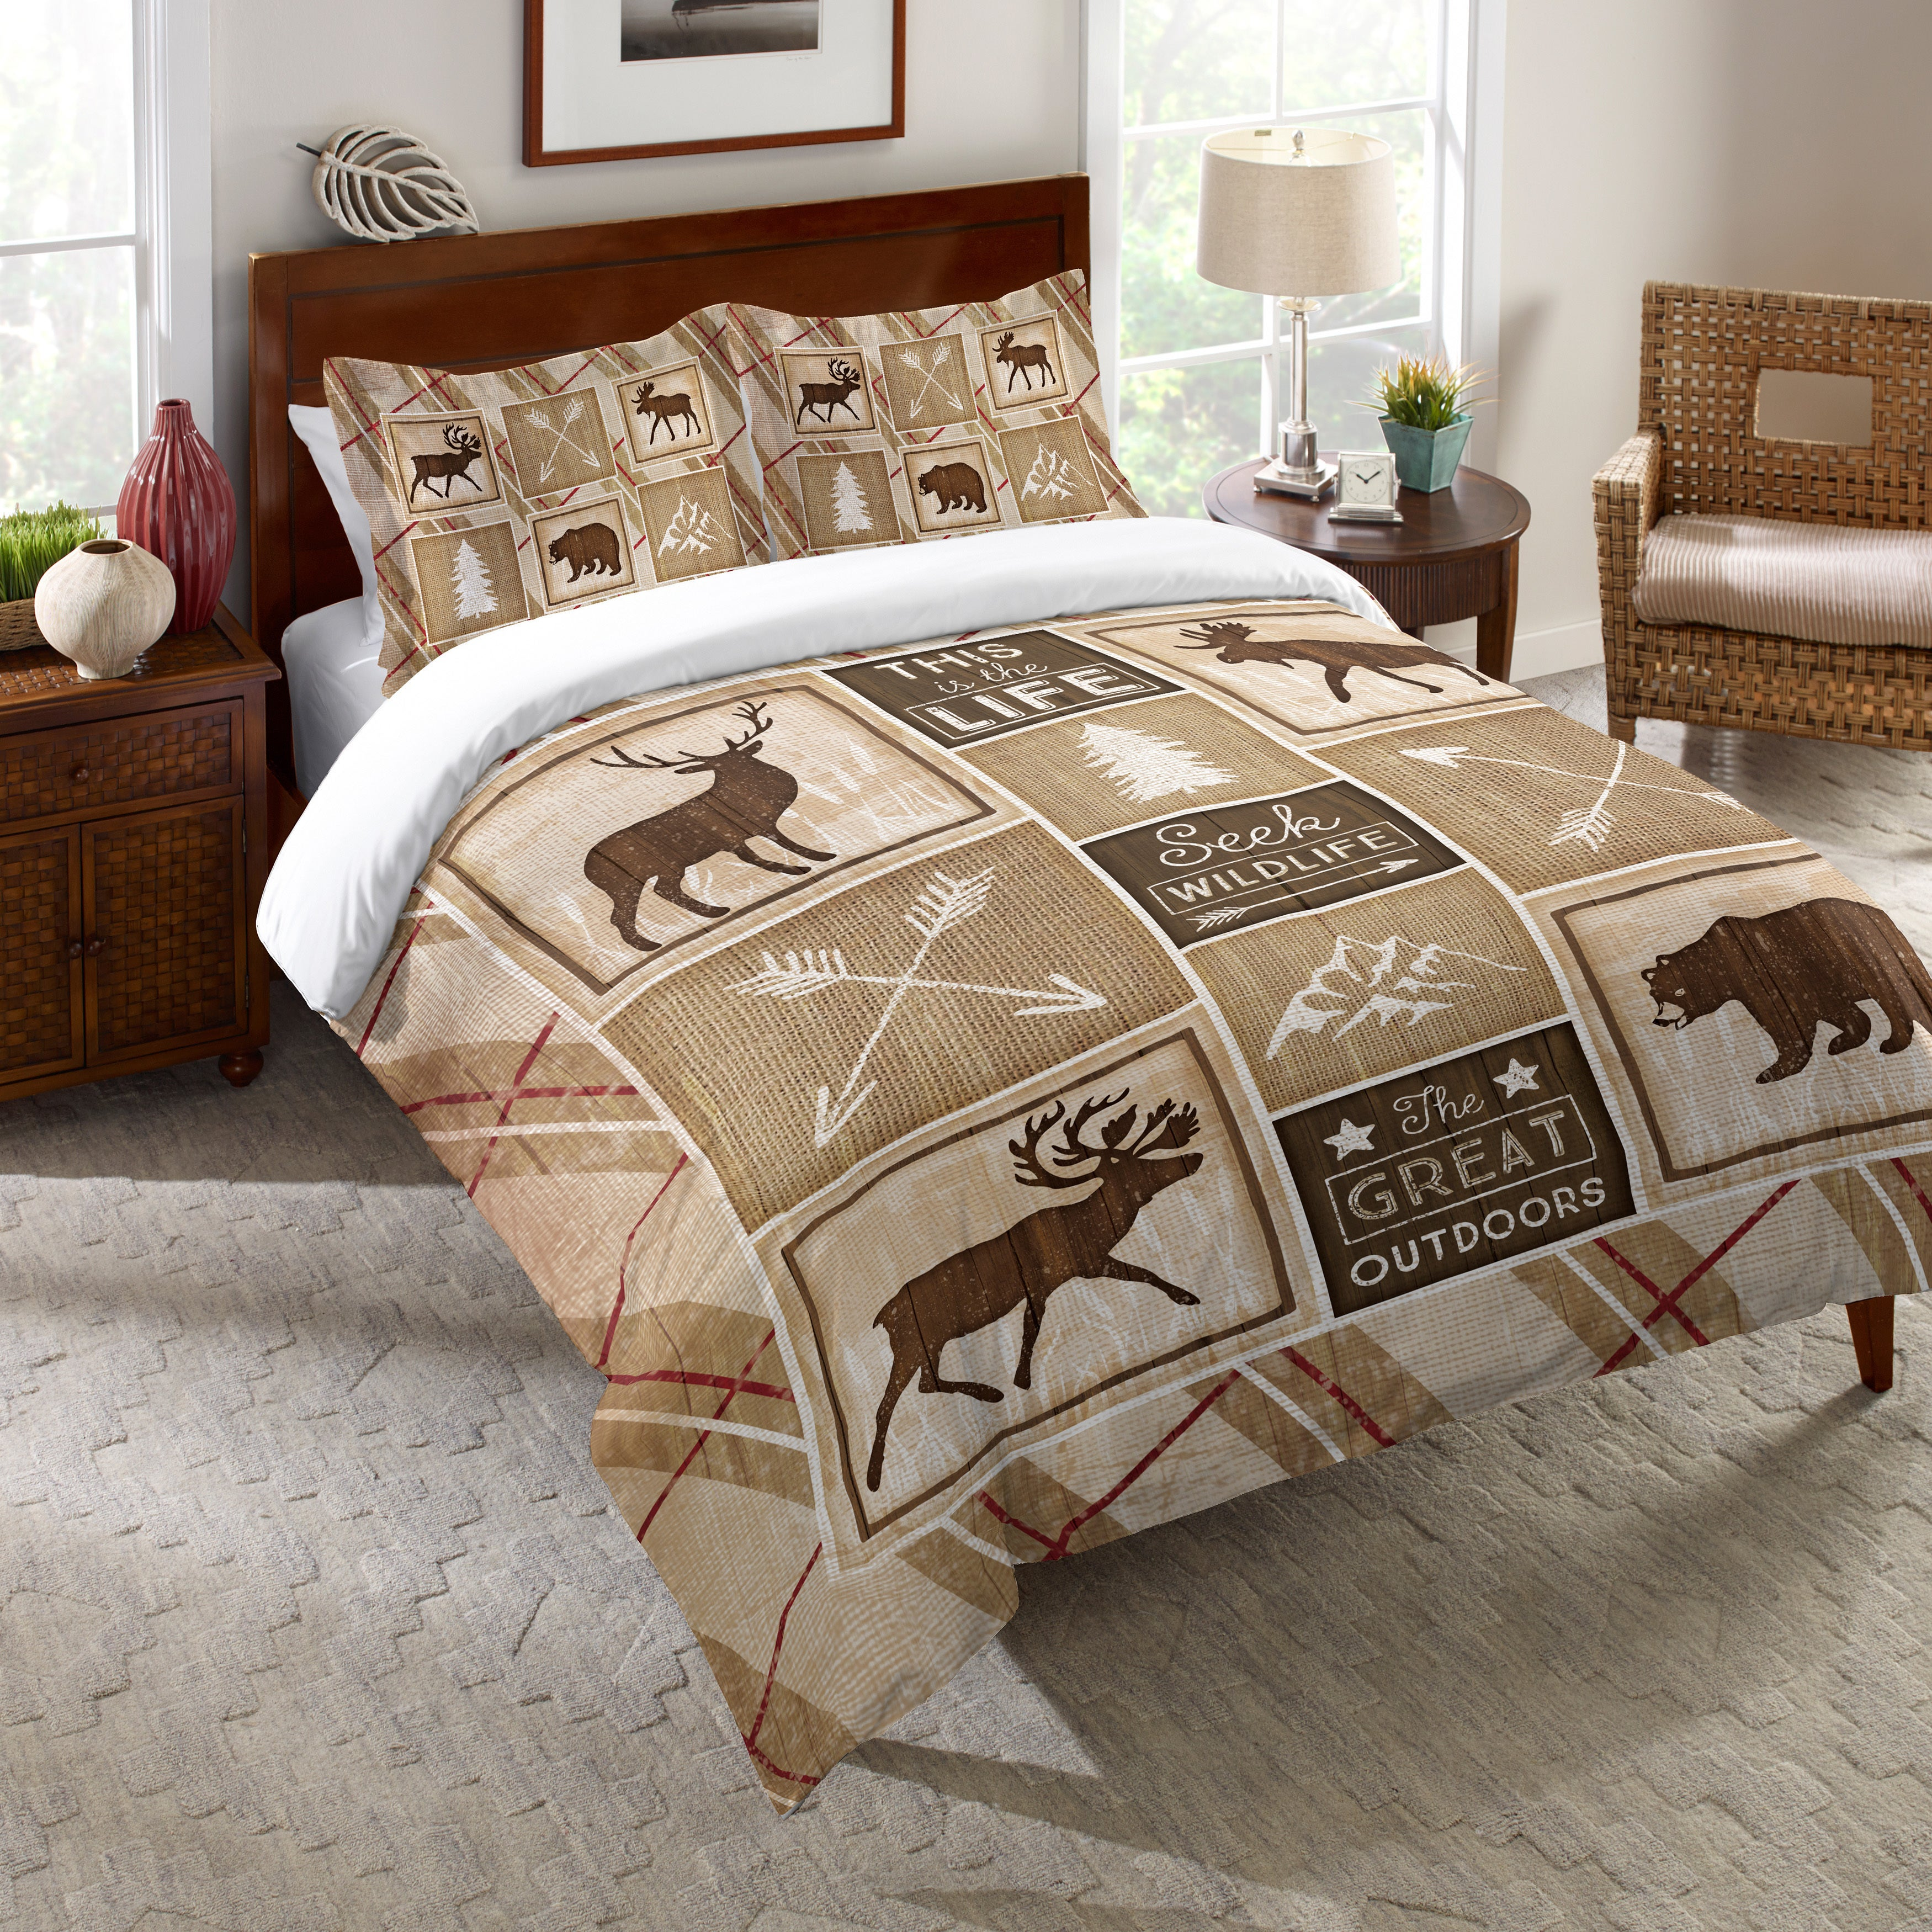 King Full Queen Or Twin Bear Lodge Deer Elk Rustic Cabin Comforter Bedding Set Home Garden Comforters Bedding Sets